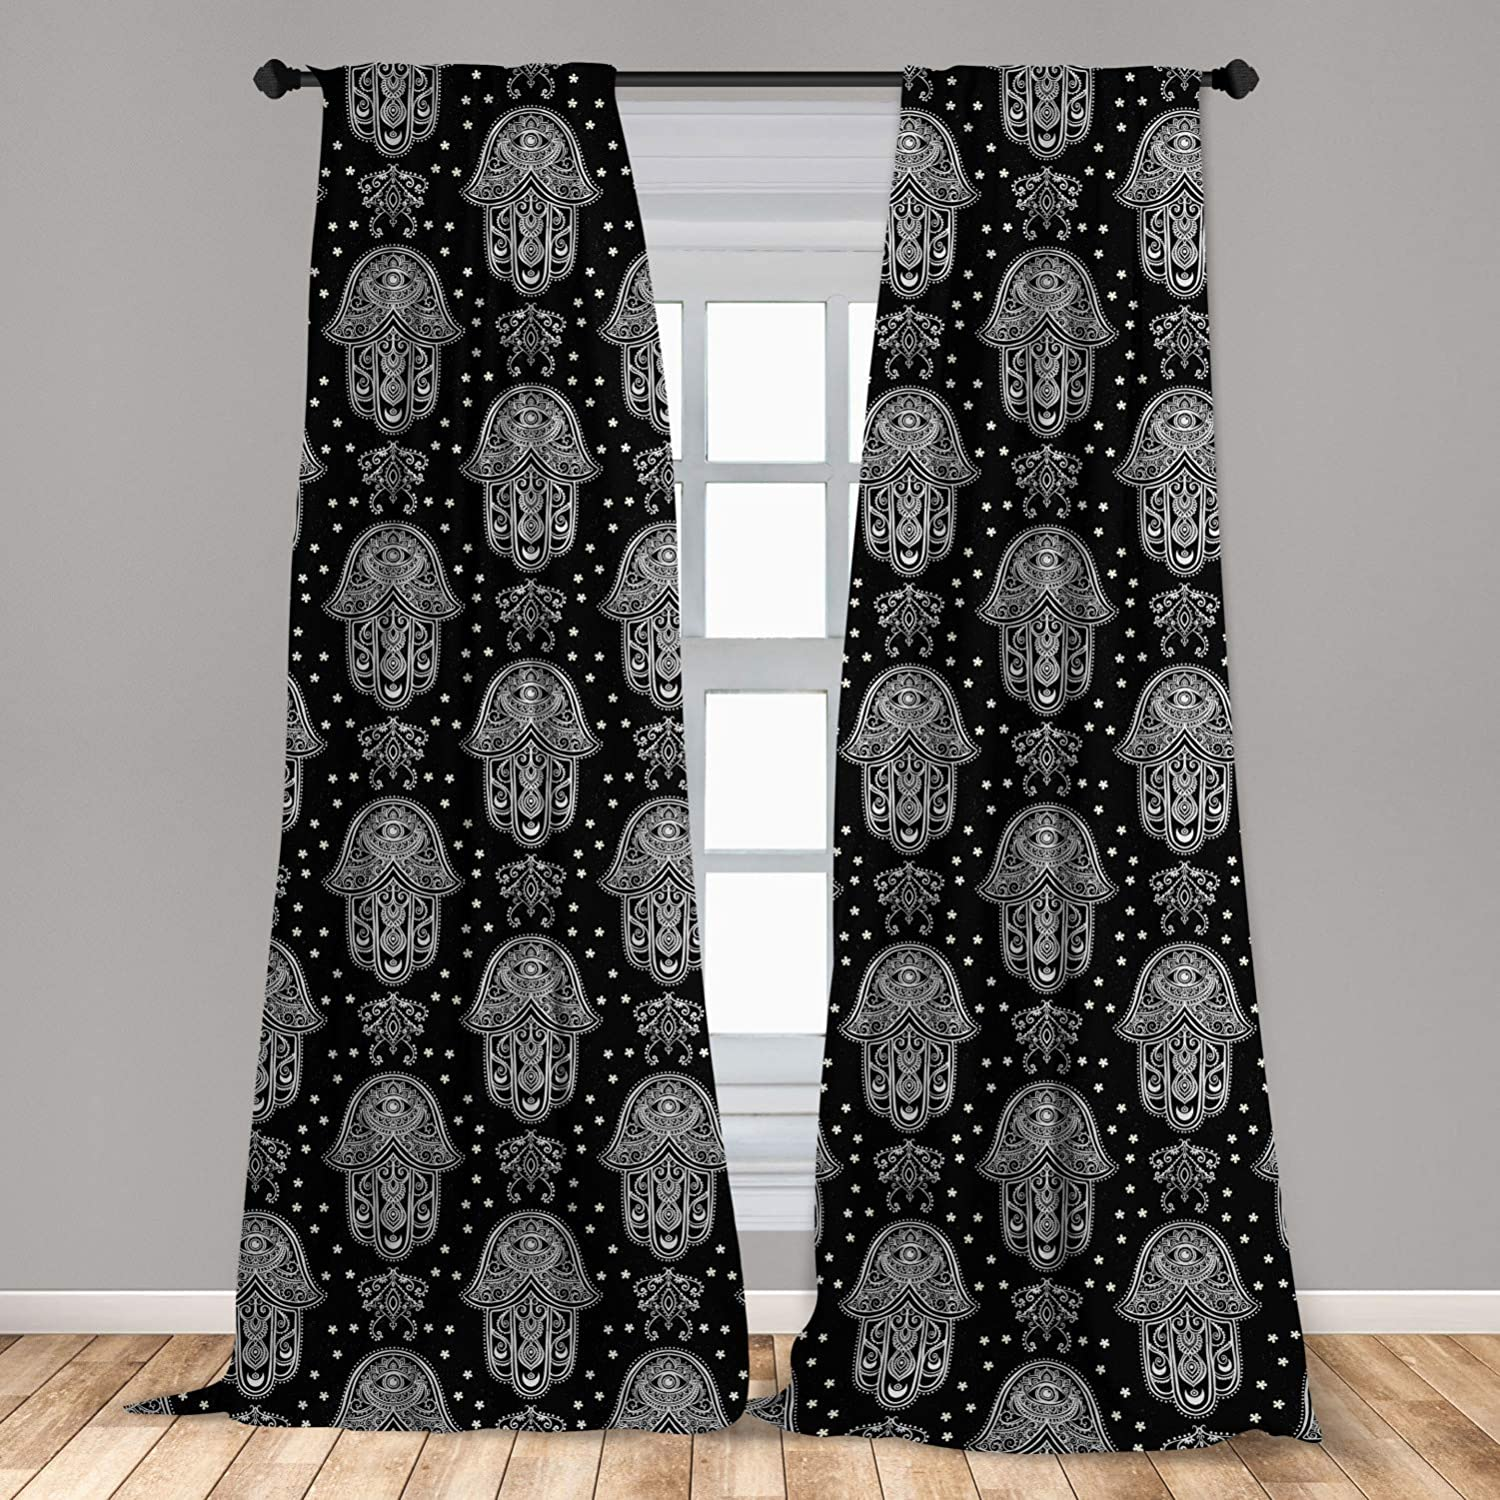 """Ambesonne Black and White Curtains, All Seeing Eye Motif in Middle Eastern Hand Design Monochrome Mandala, Window Treatments 2 Panel Set for Living Room Bedroom Decor, 56"""" x 84"""", Charcoal White"""